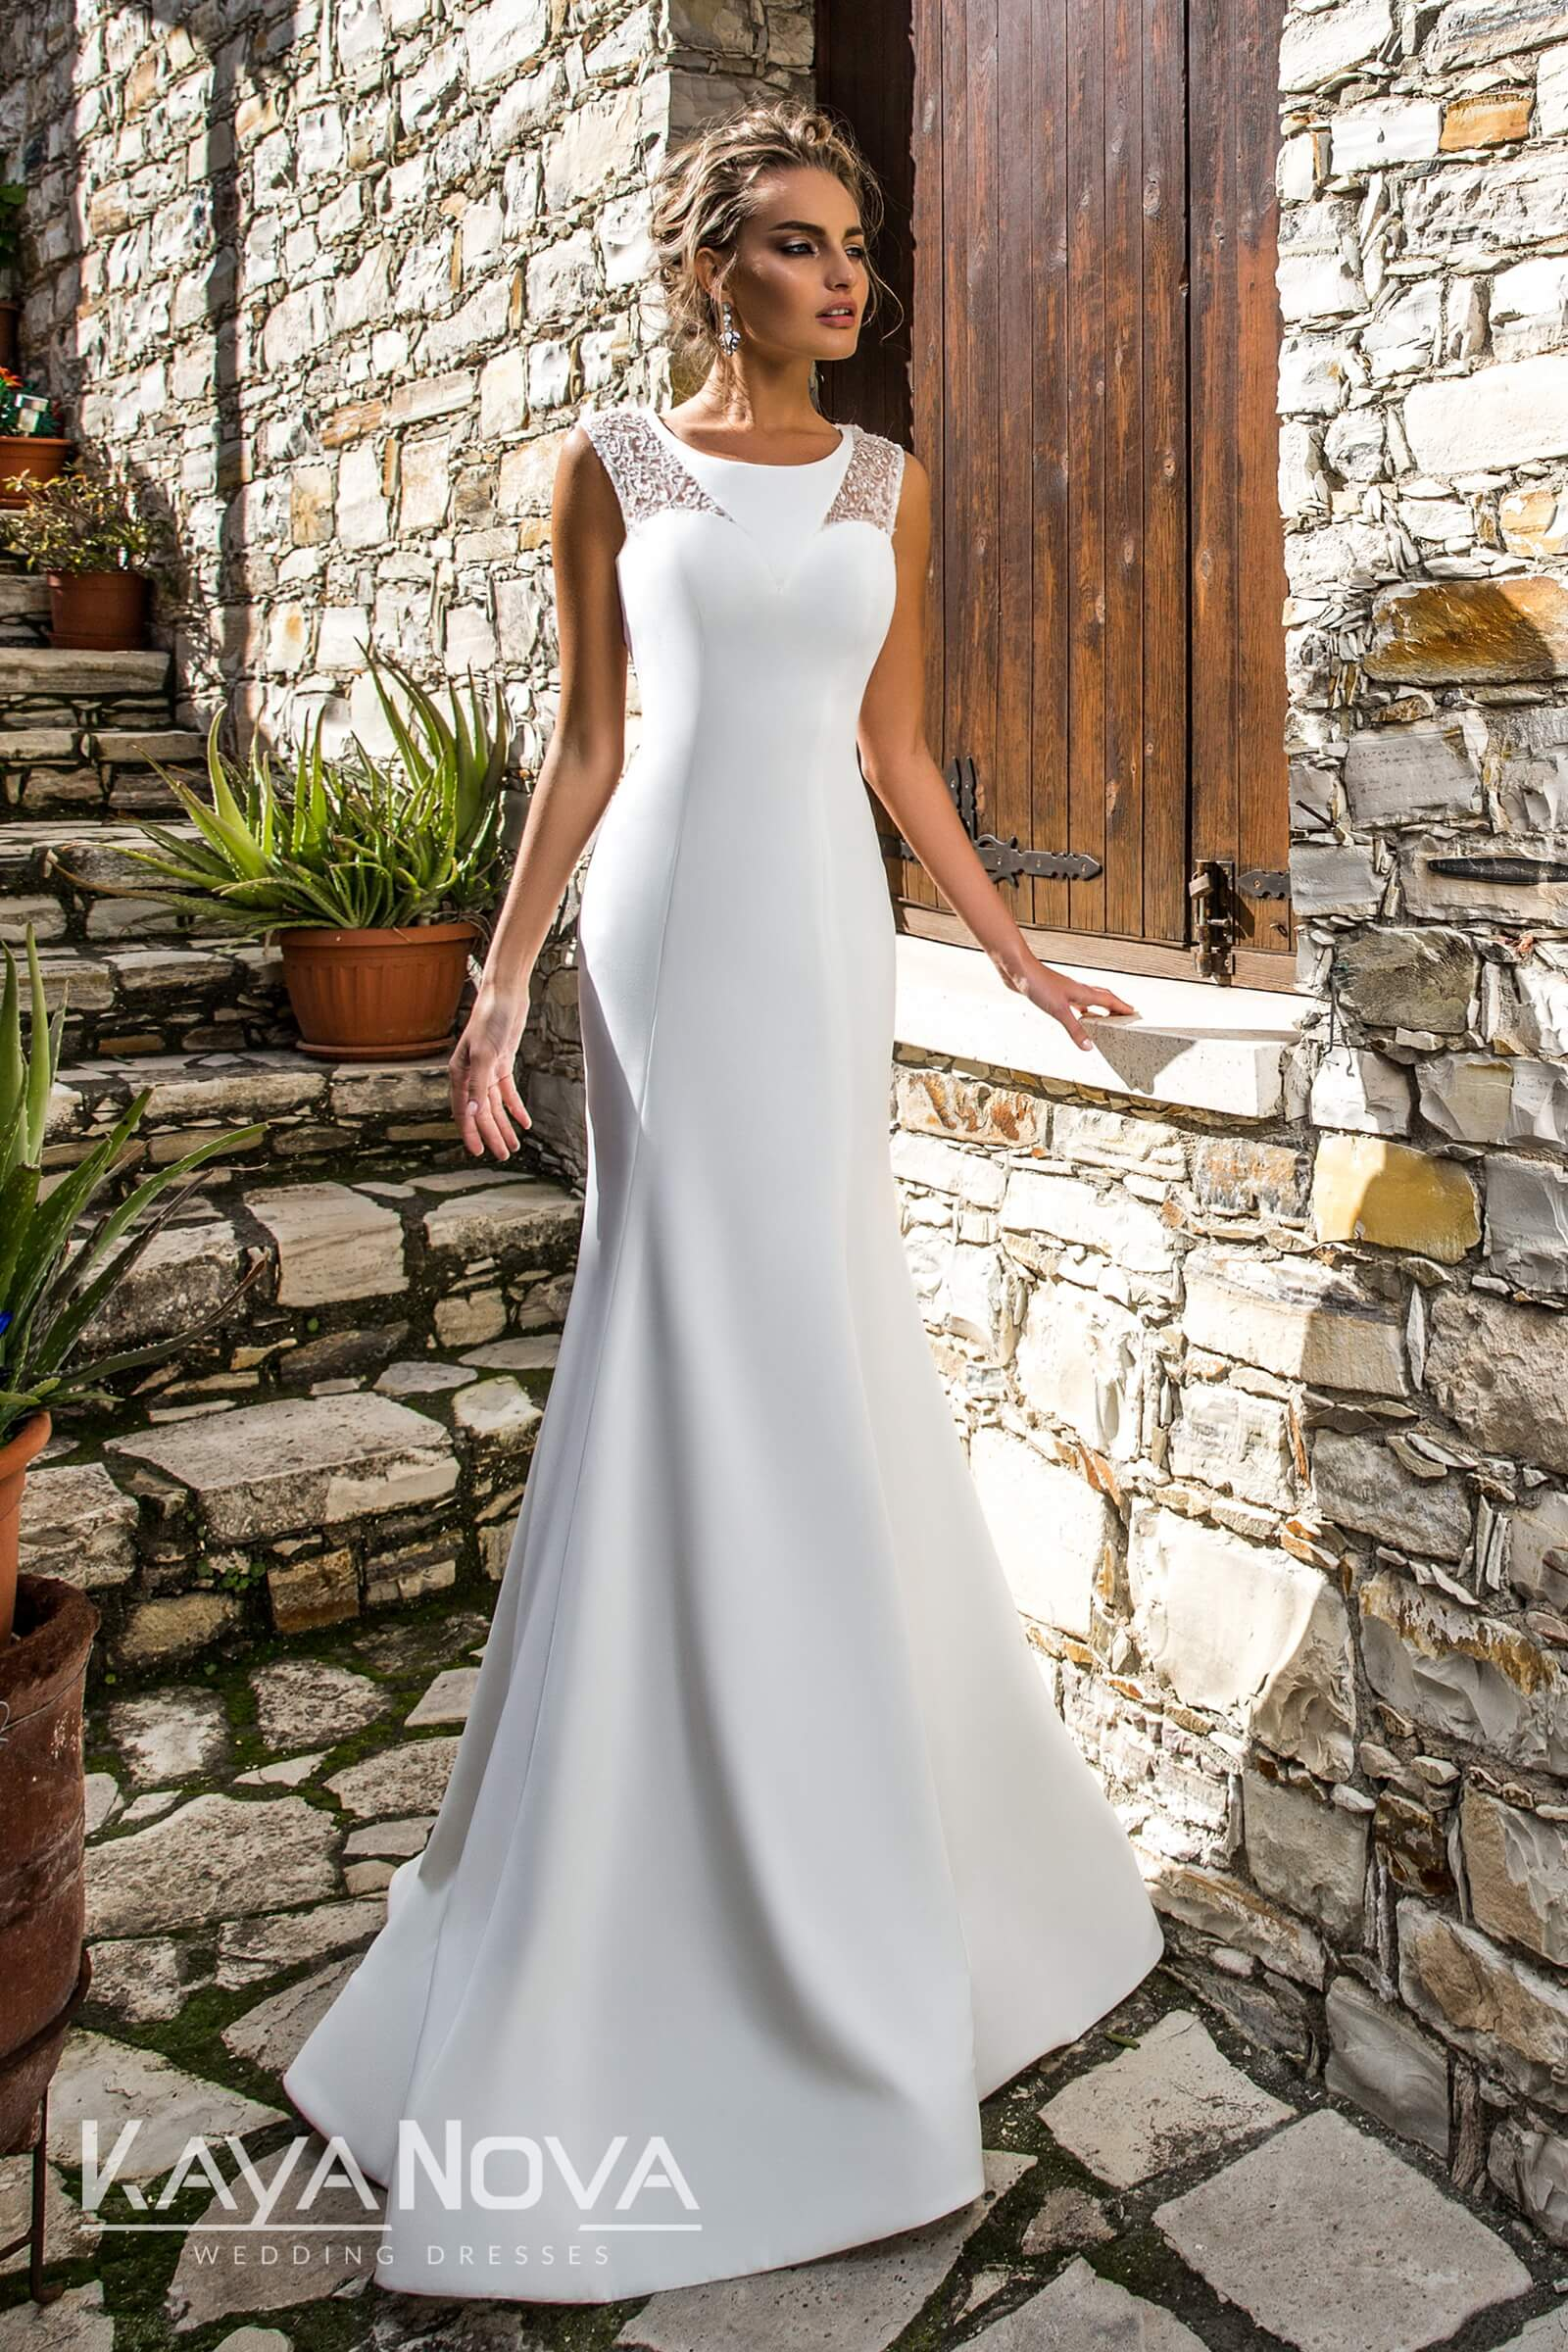 https://kayawedding.com/images/stories/virtuemart/product/Kinsley 3_15.jpg